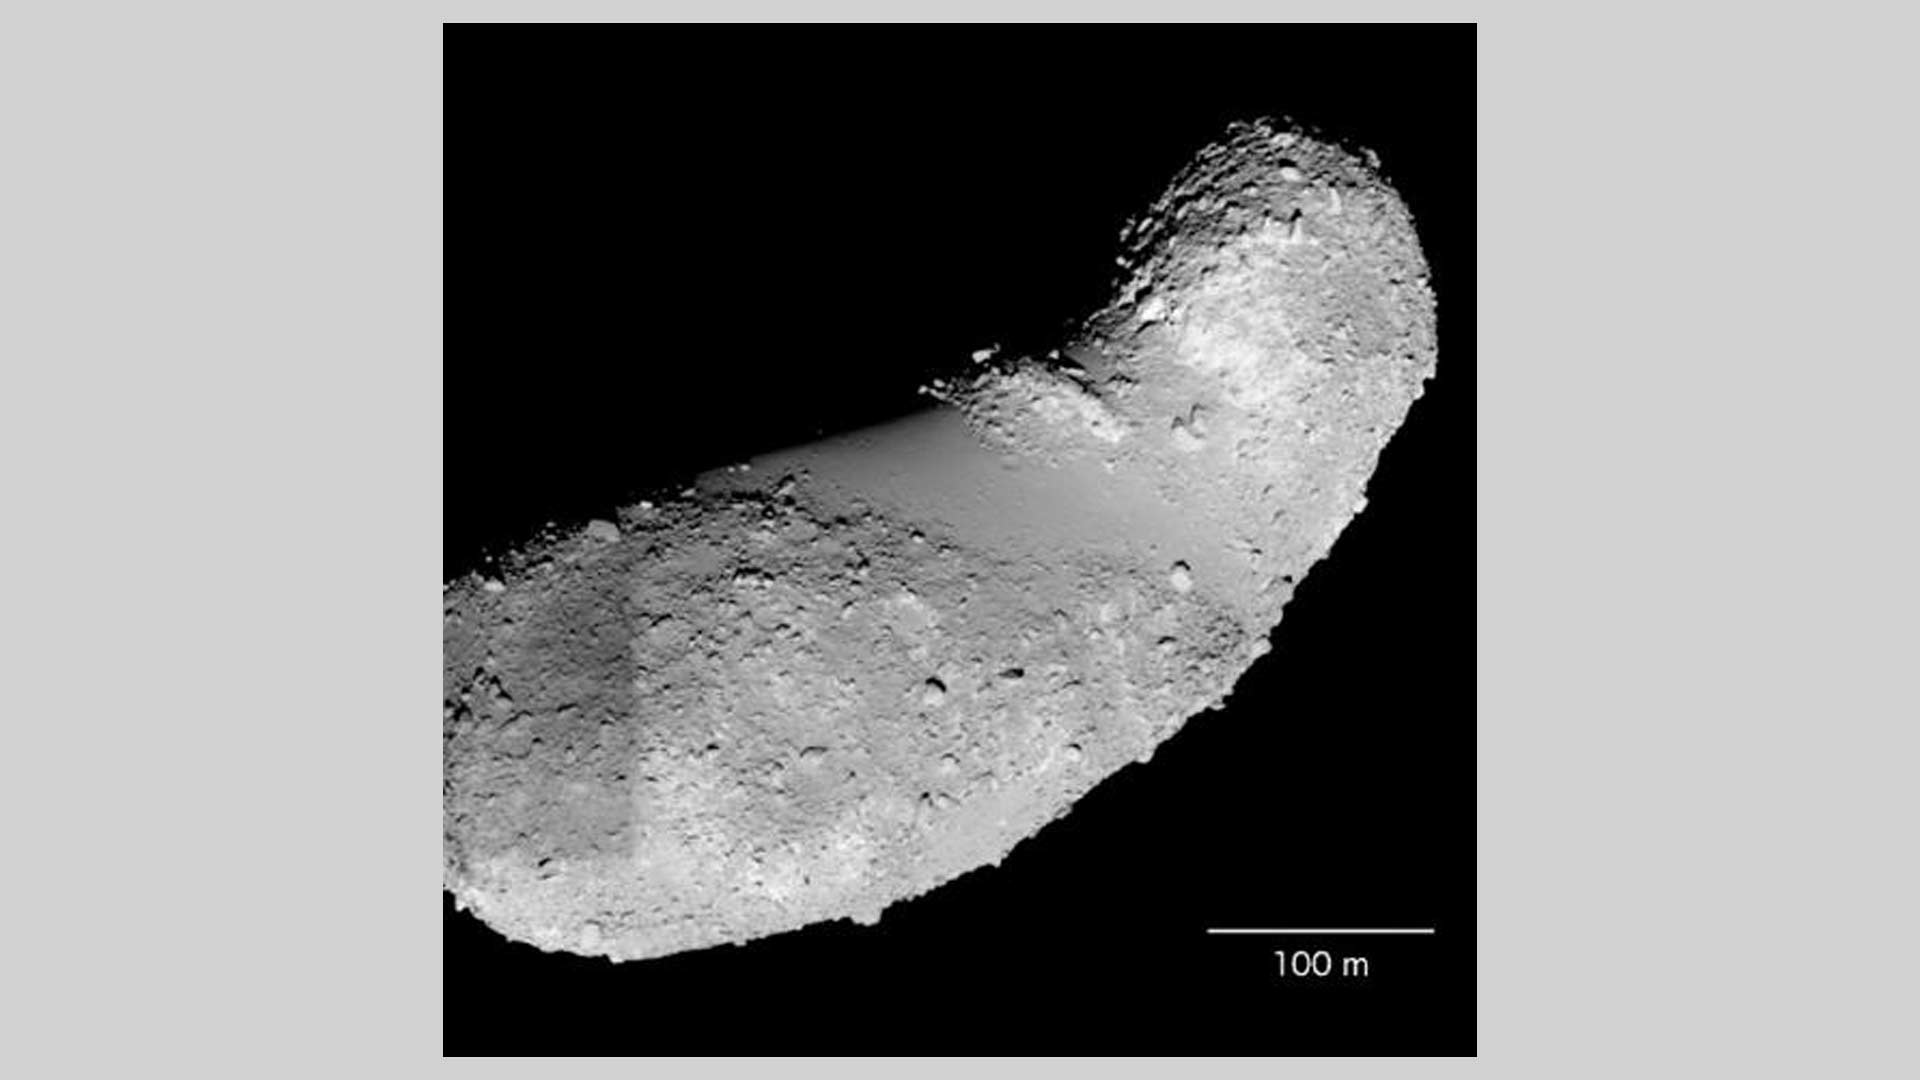 Asteroid Itokawa is the much-battered remnant of a larger parent body. The samples provided by JAXA and studied by Jin and Bose came from the feature called the Muses Sea, which is the smooth area in the middle of Itokawa.